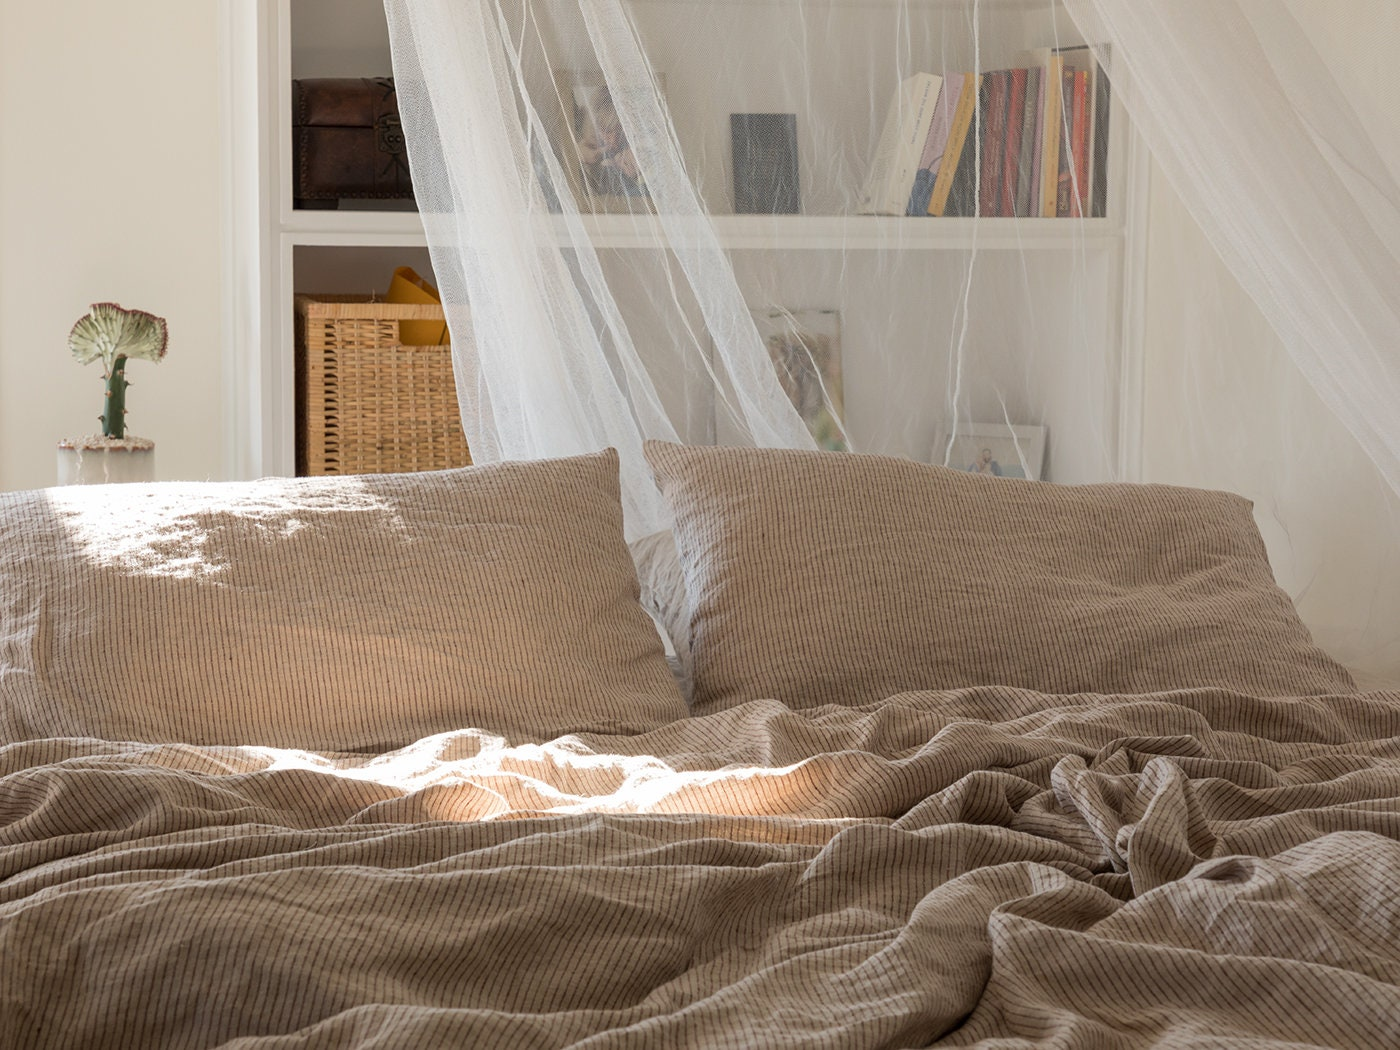 Linen Duvet Cover Washed Linen Duvet Cover Linen Duvet Cover In Natural Color With Bordo Stripes Linen Bedding Available In Any Size